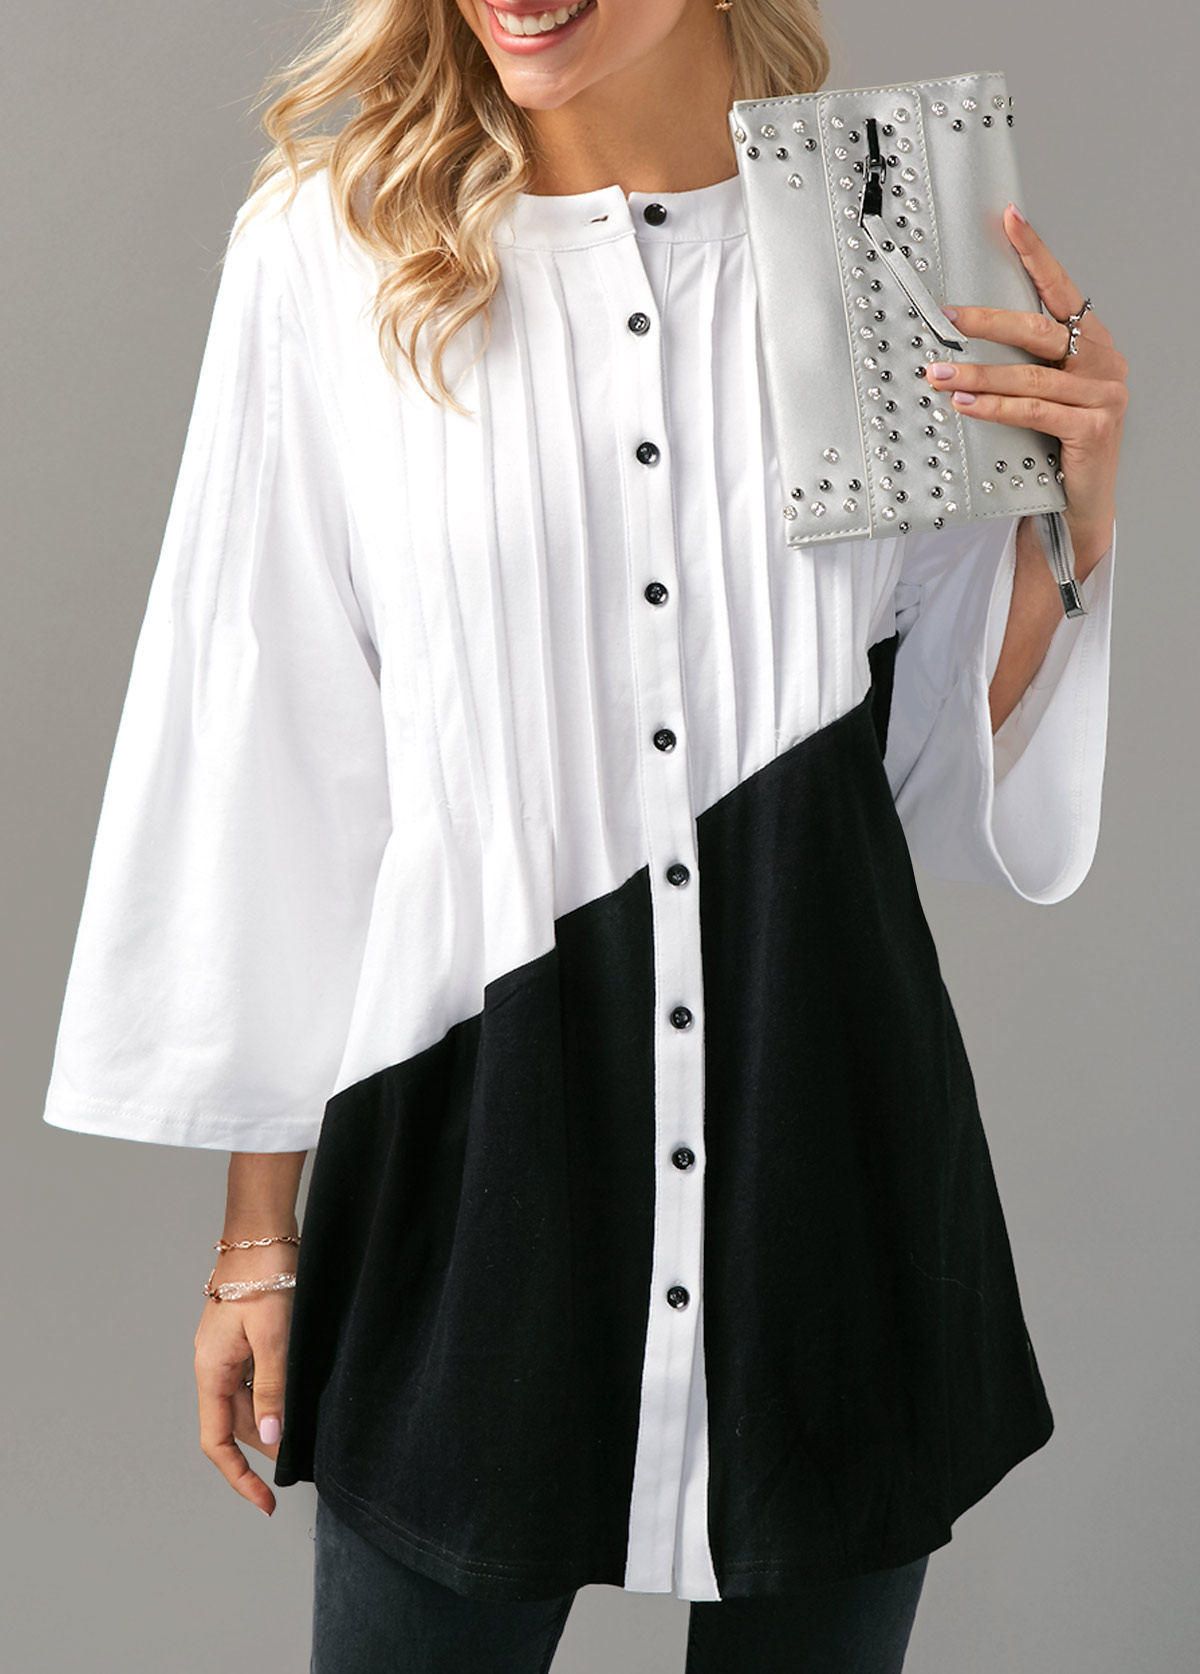 Women Blouse Designs Women Blouses And Tops Formal Blouses For Women